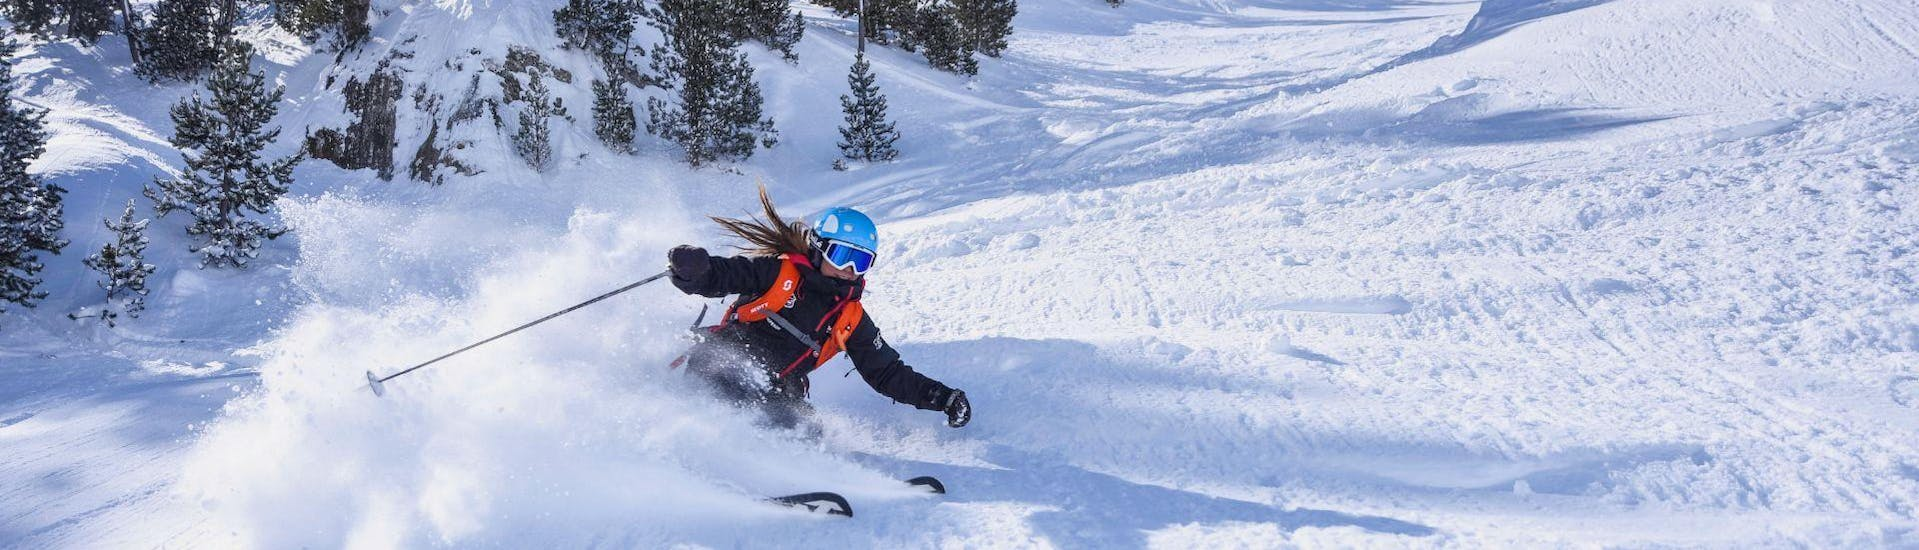 A ski instructor of the Escuela Ski Sierra Nevada rides elegantly and sporty down the beautiful slope.